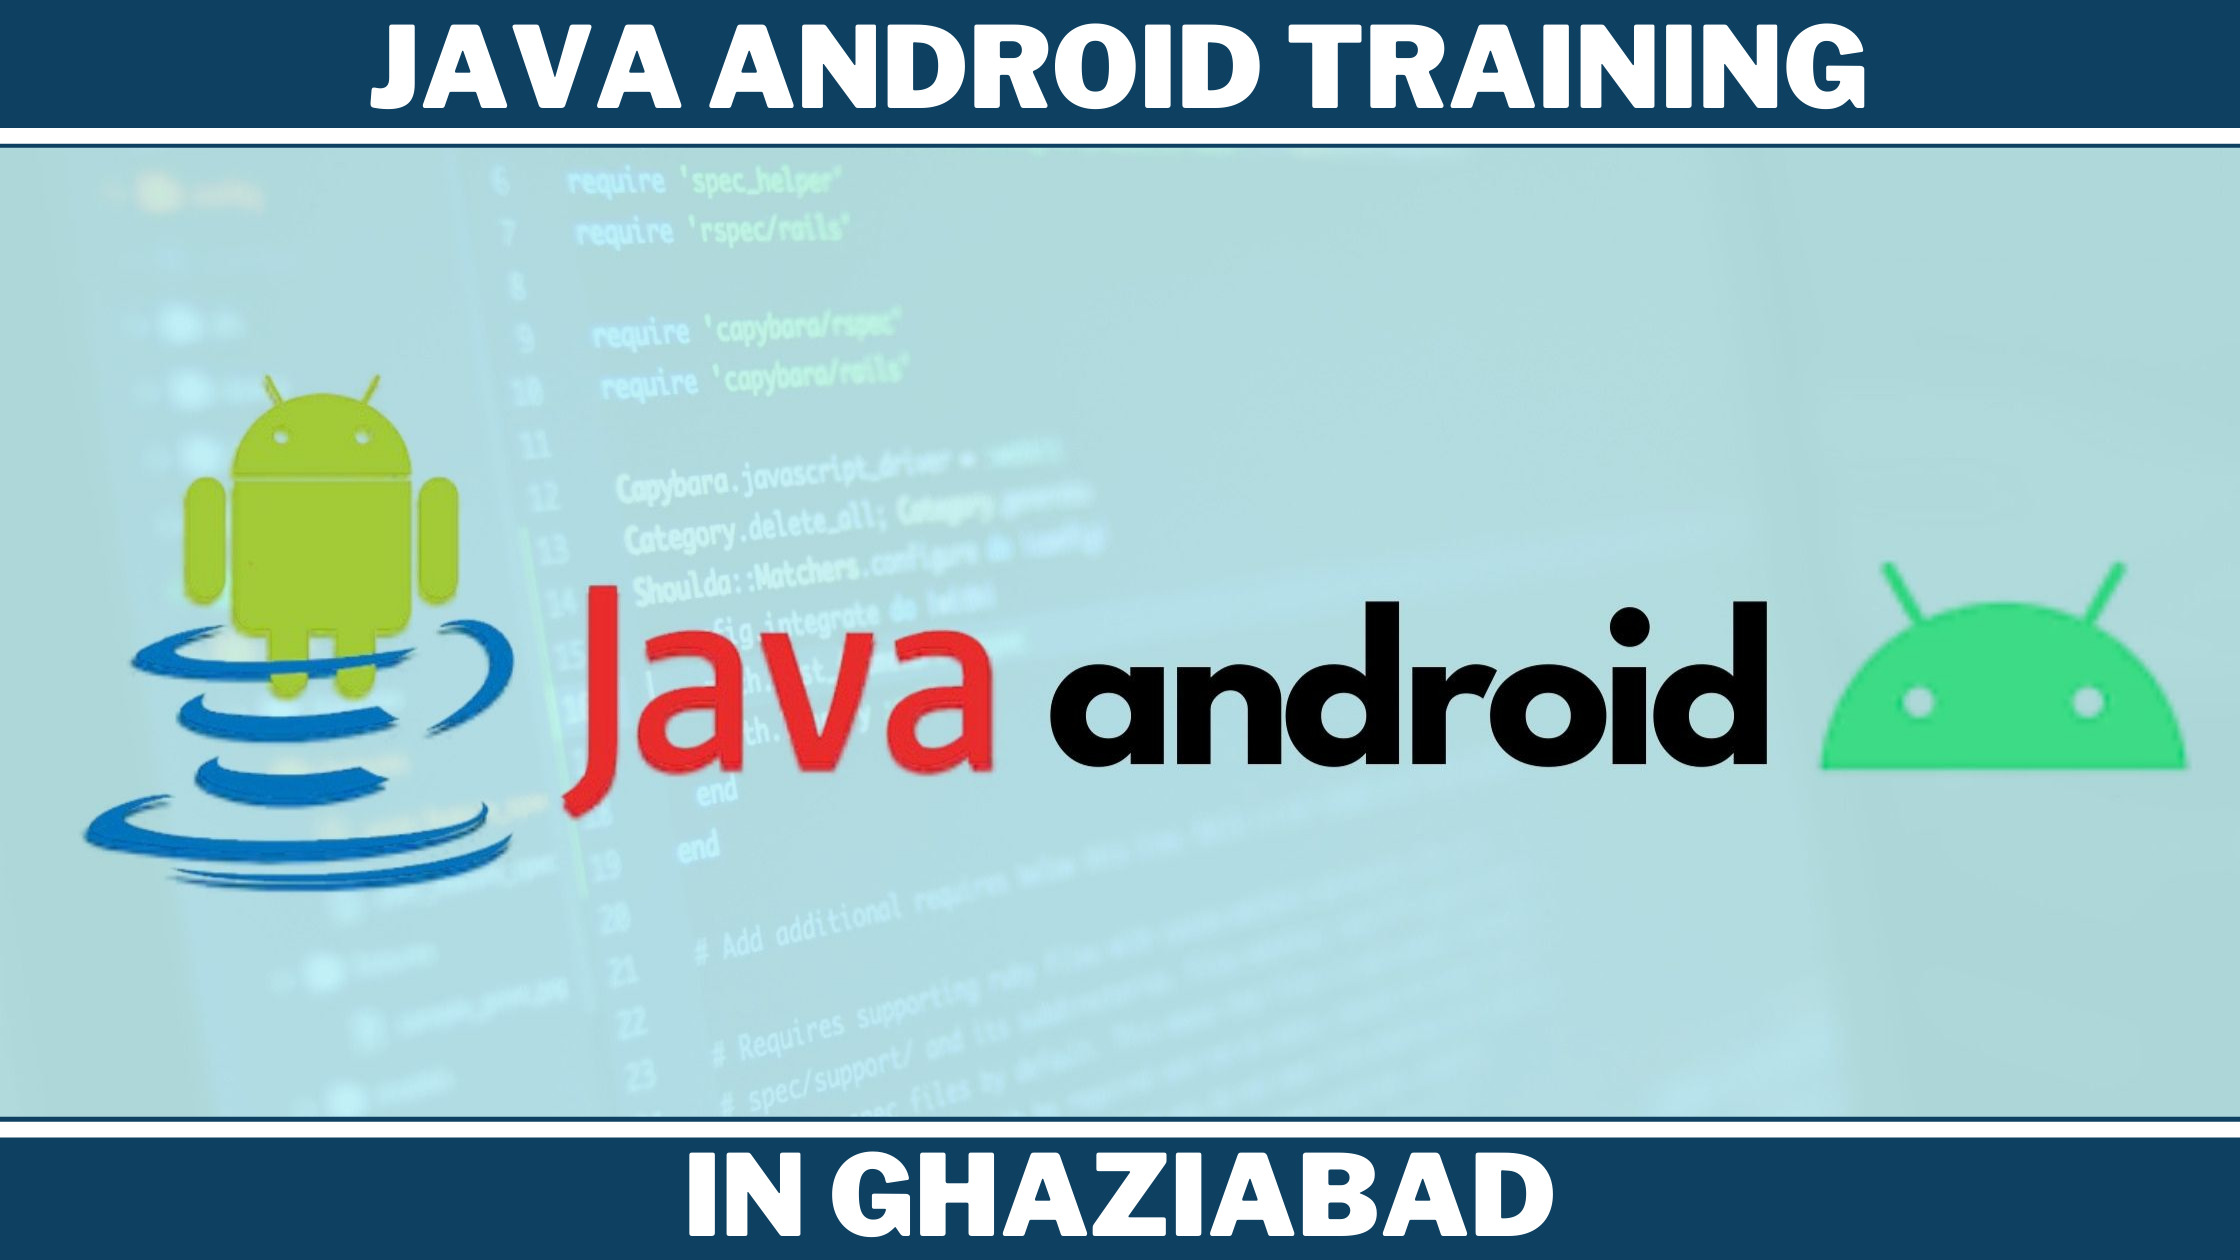 java_android_training_in_ghaziabad-background.jpeg